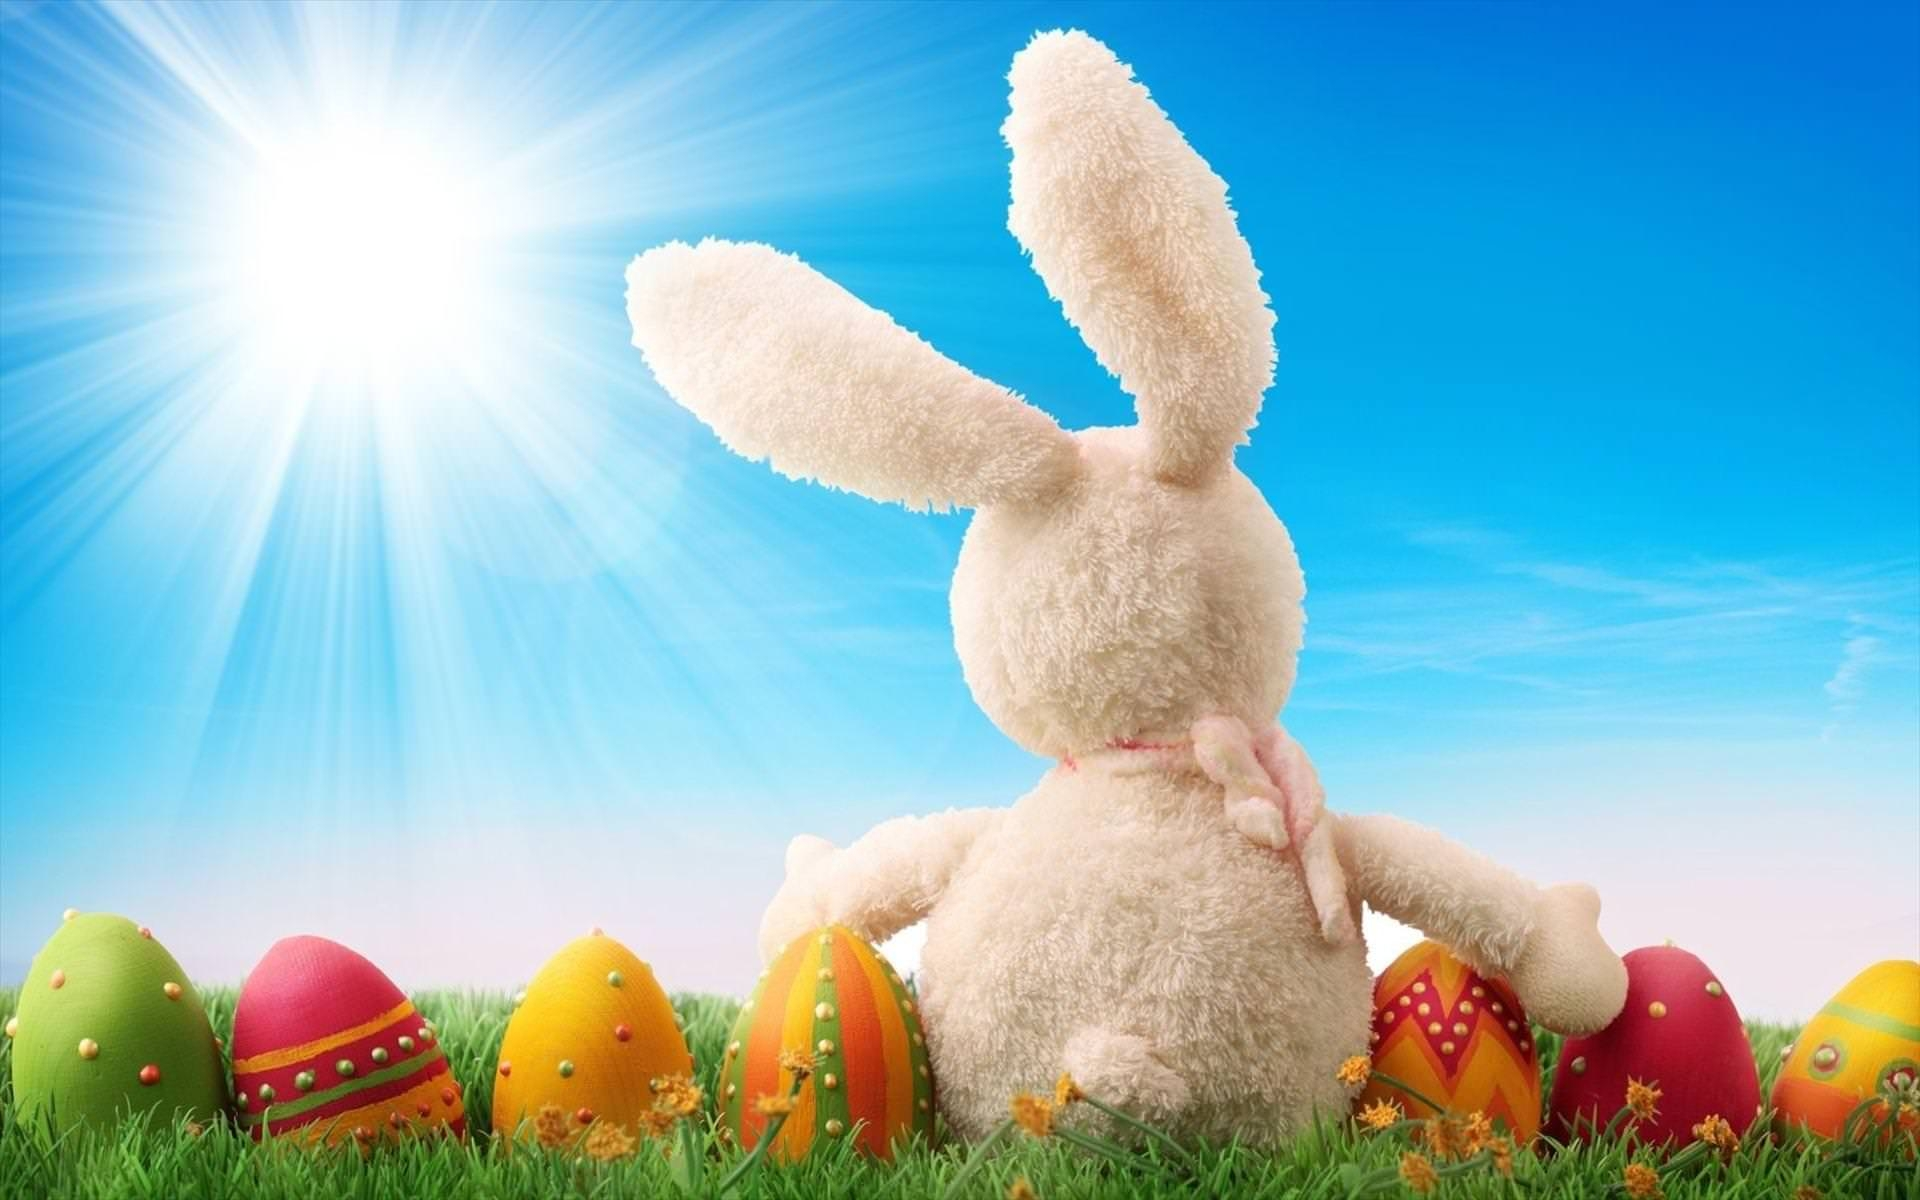 30+ Easter Bunny Wallpapers, Backgrounds, Images